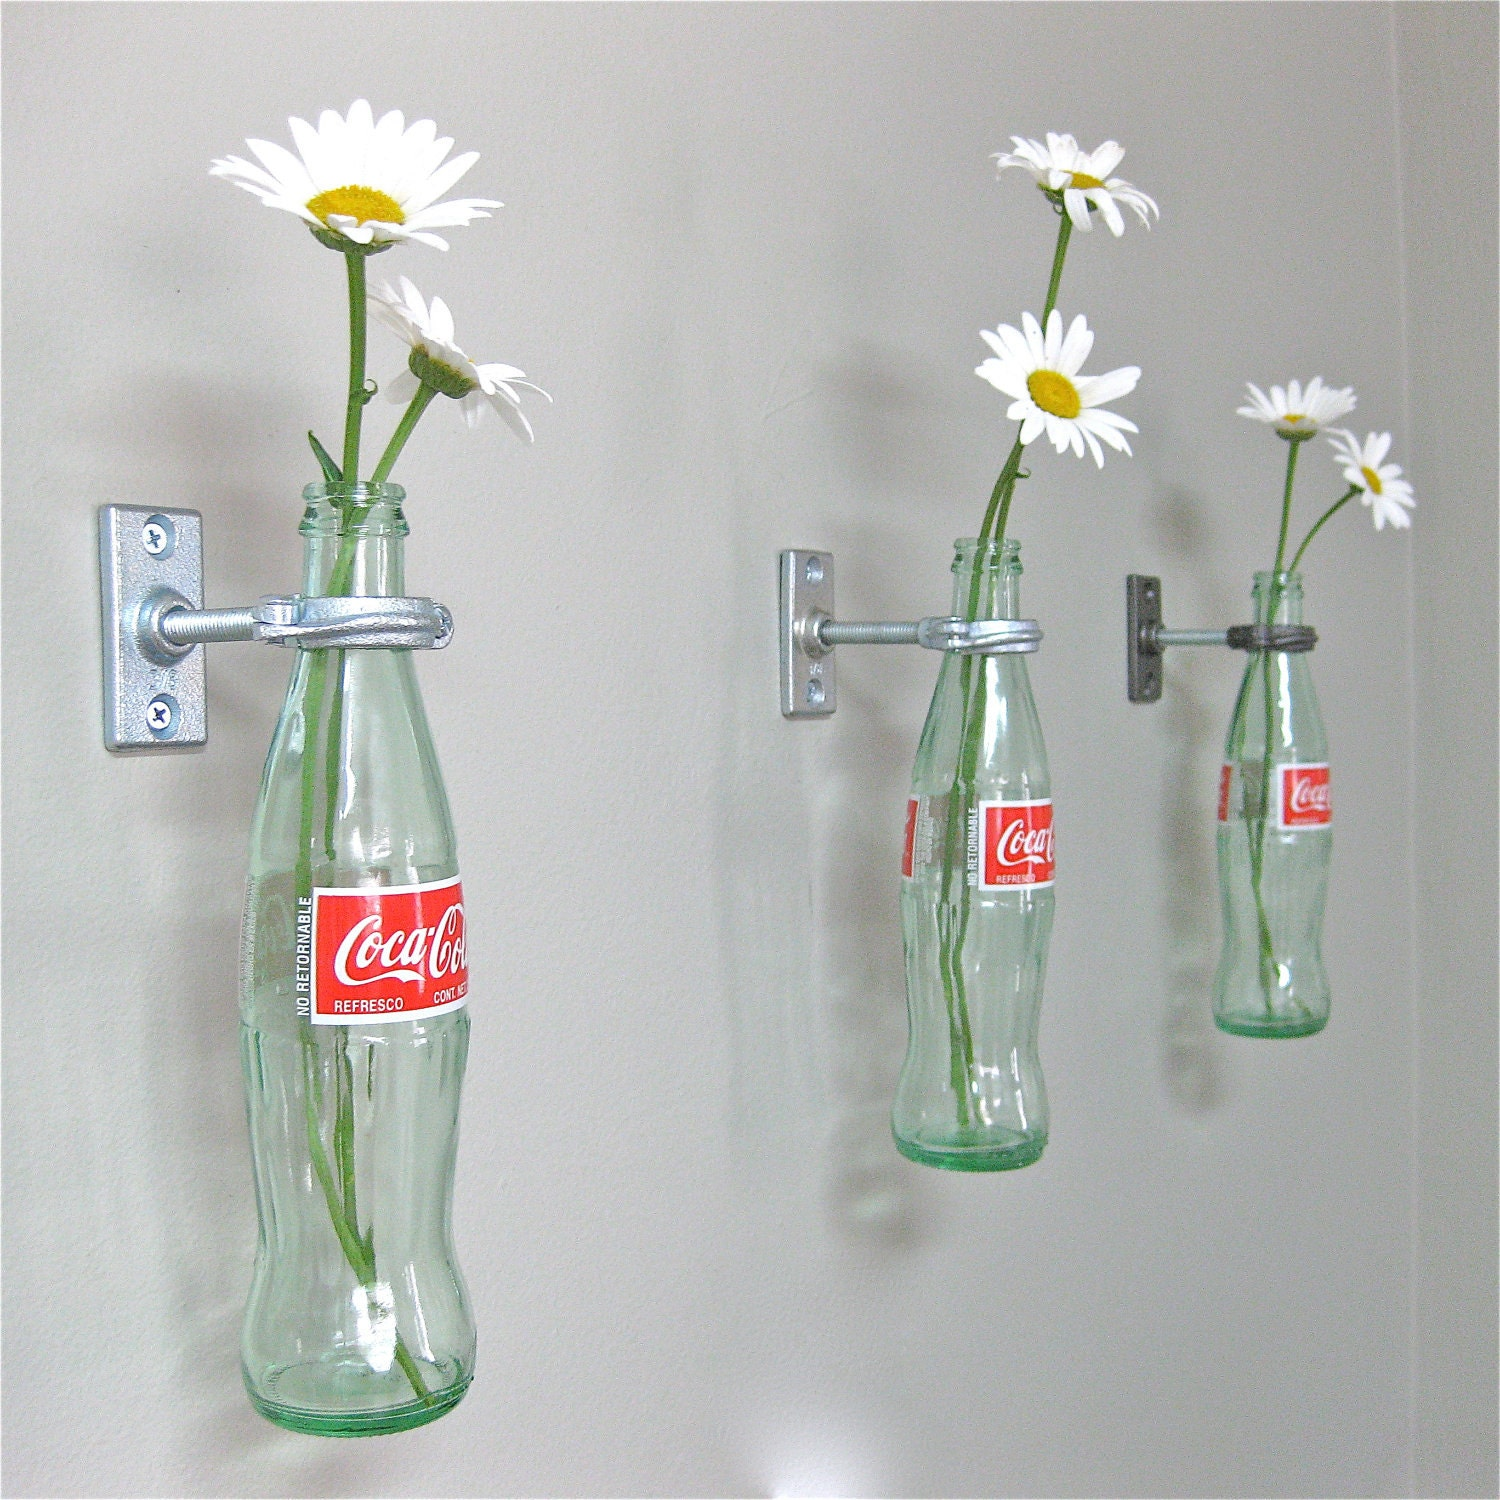 2 Coca-Cola Bottle Hanging Flower Vases -Mother's Day Gift - on leaning flower vase, chandelier flower vase, window flower vase, outdoor flower vase, halloween flower vase, love flower vase, hand flower vase, accessories flower vase, painting flower vase, rope flower vase, table flower vase, falling flower vase, hall flower vase, water flower vase, wall flower vase, short flower vase, personalized flower vase, product flower vase, decor flower vase, beach flower vase,